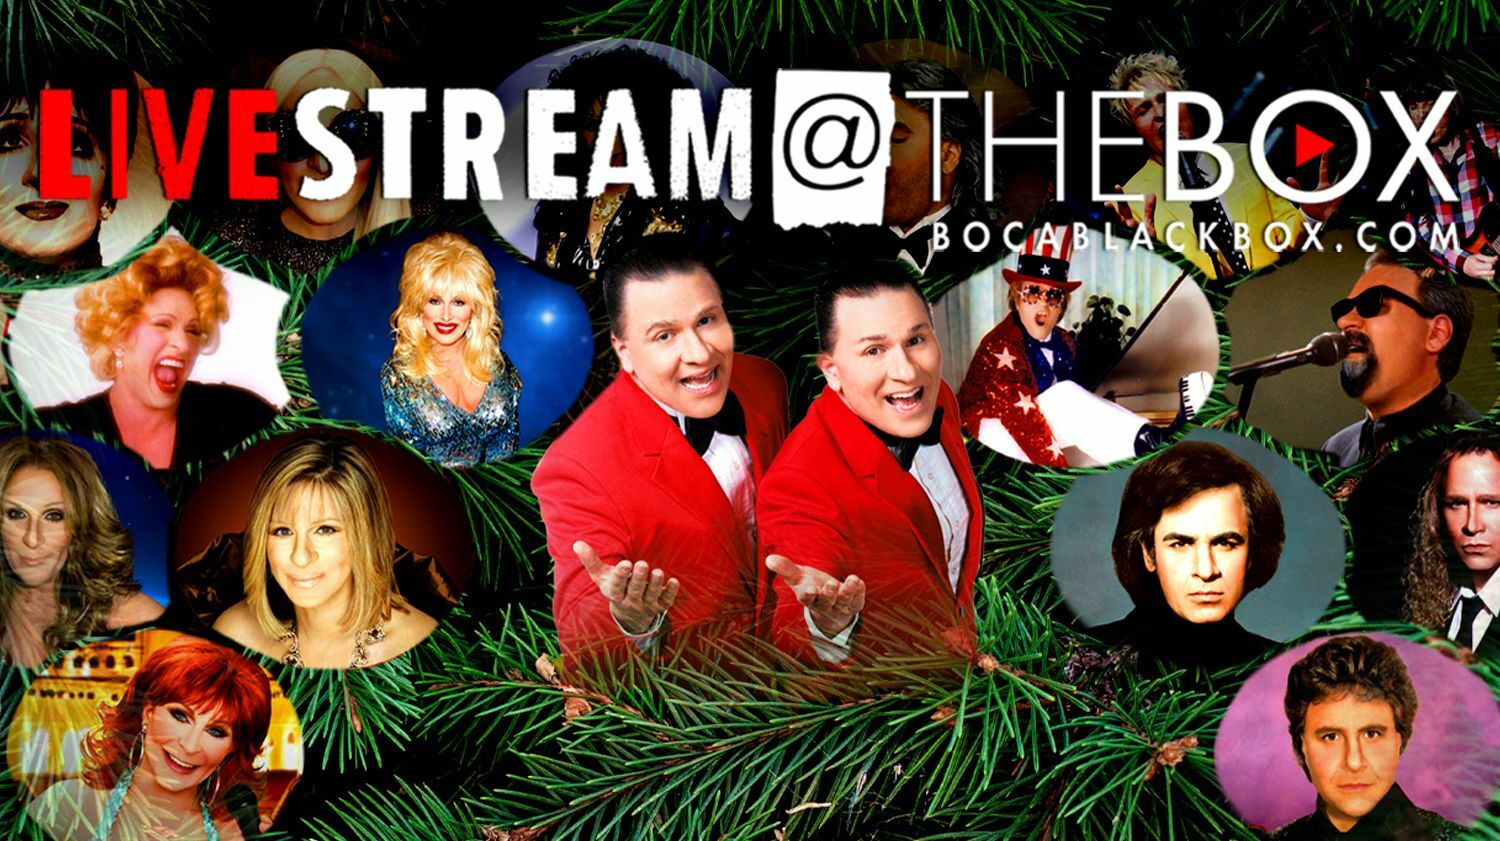 """The Edwards Twins Holiday with the Stars: """"Livestream @ The Box"""""""